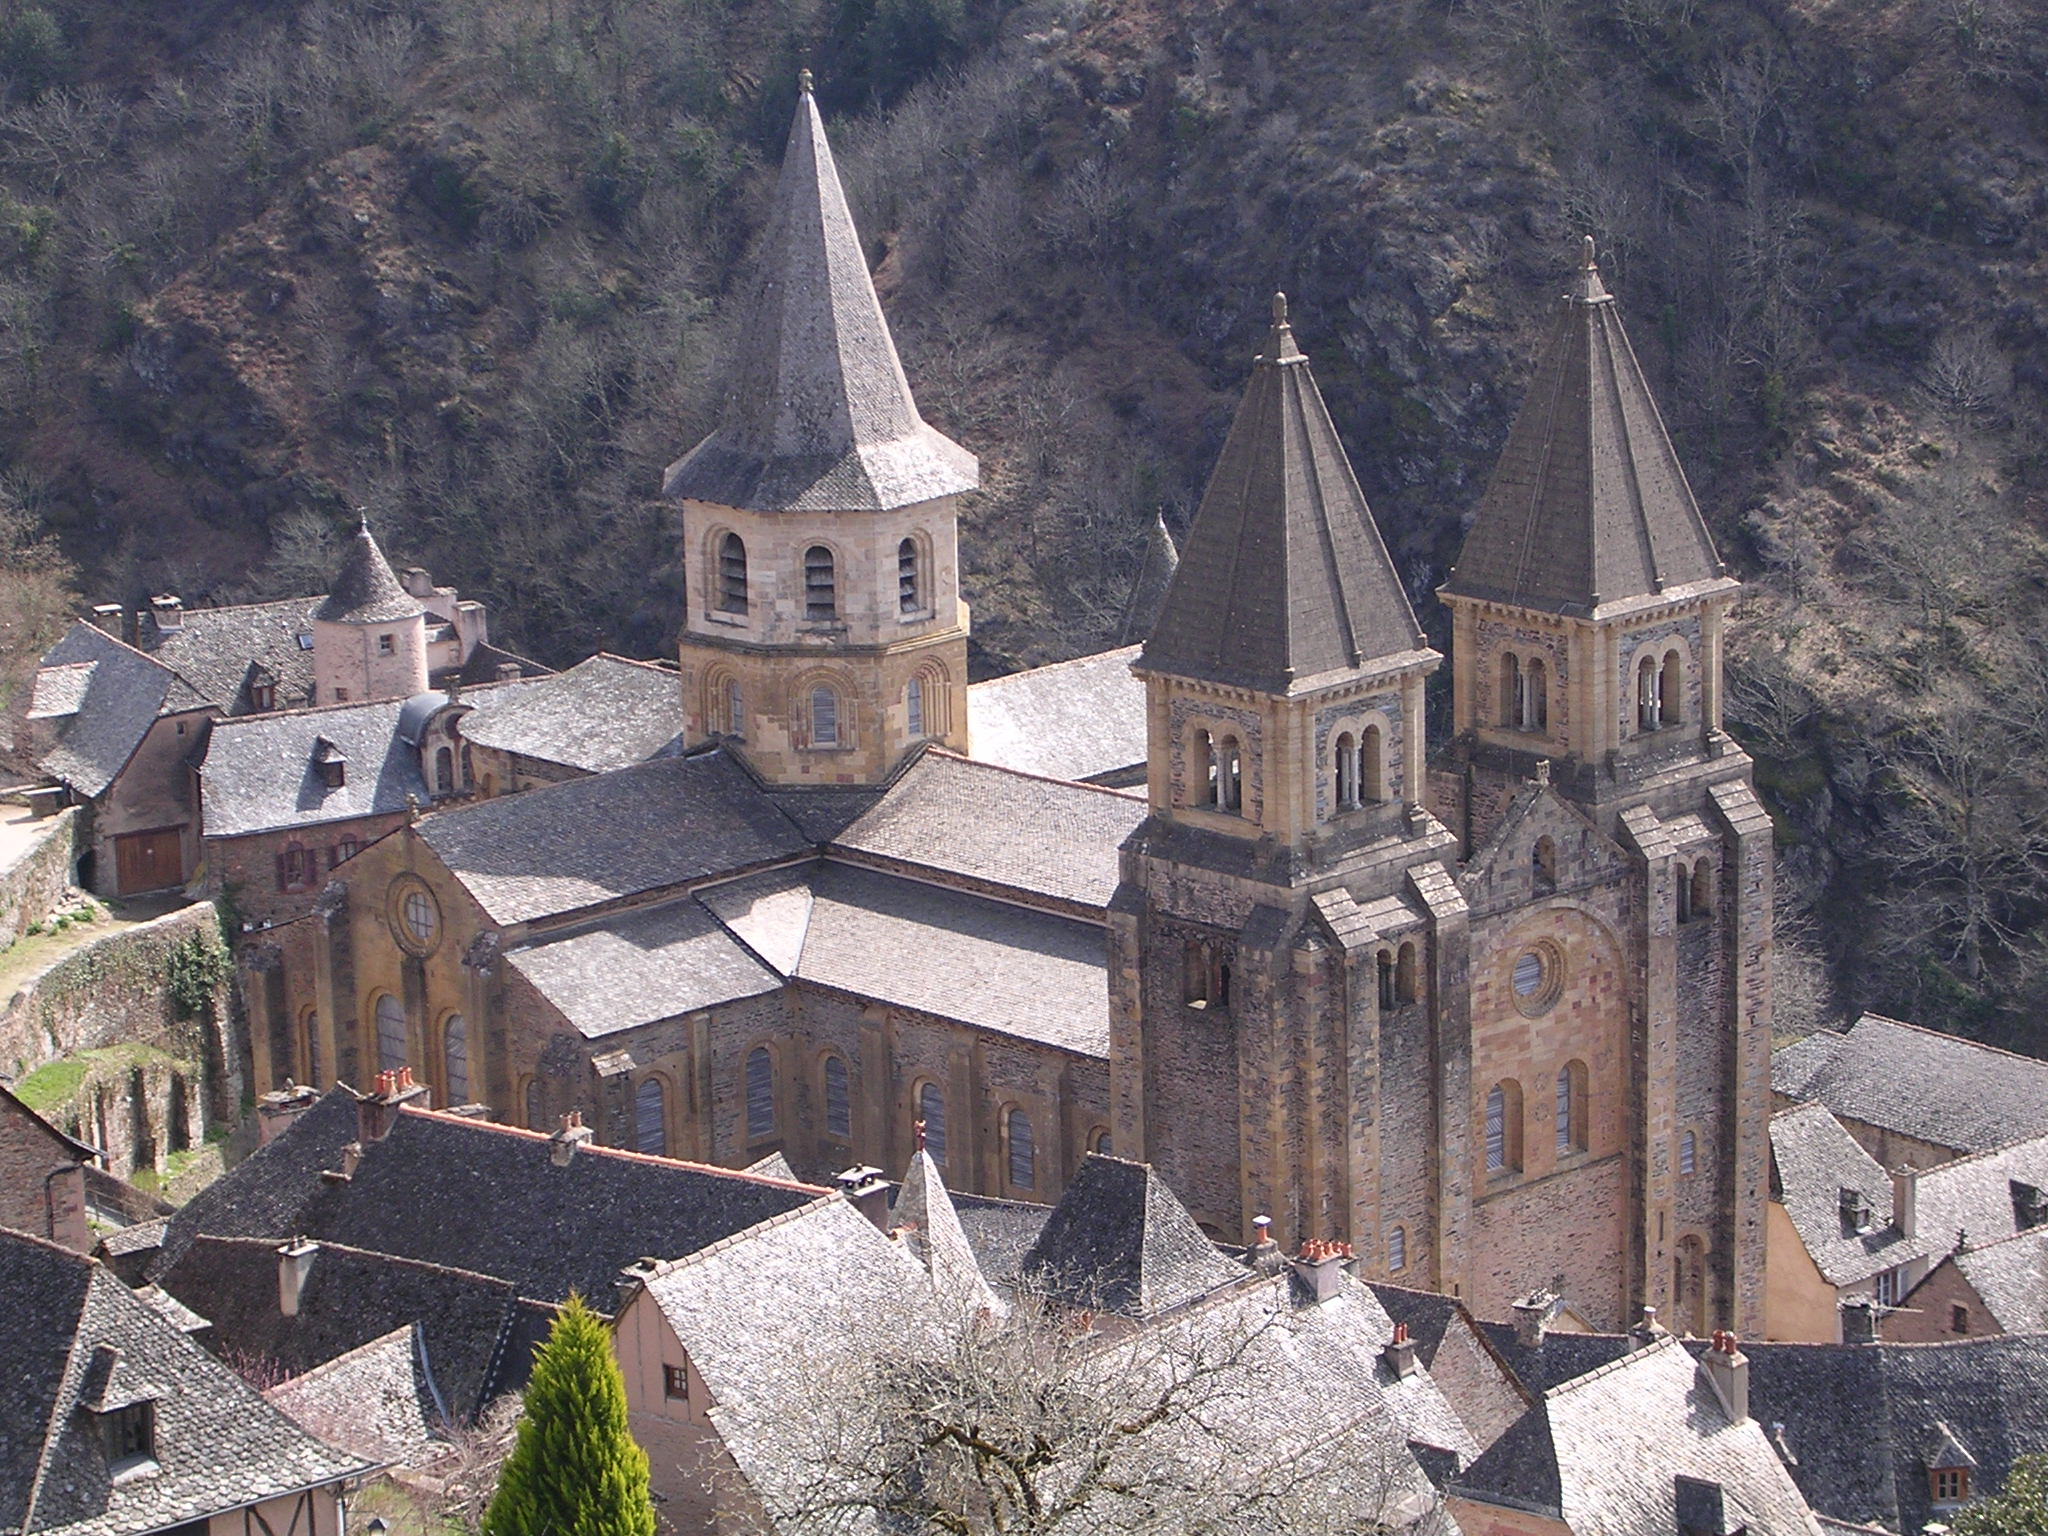 http://sumateologica.files.wordpress.com/2009/12/sainte-foy_de_conques.jpg